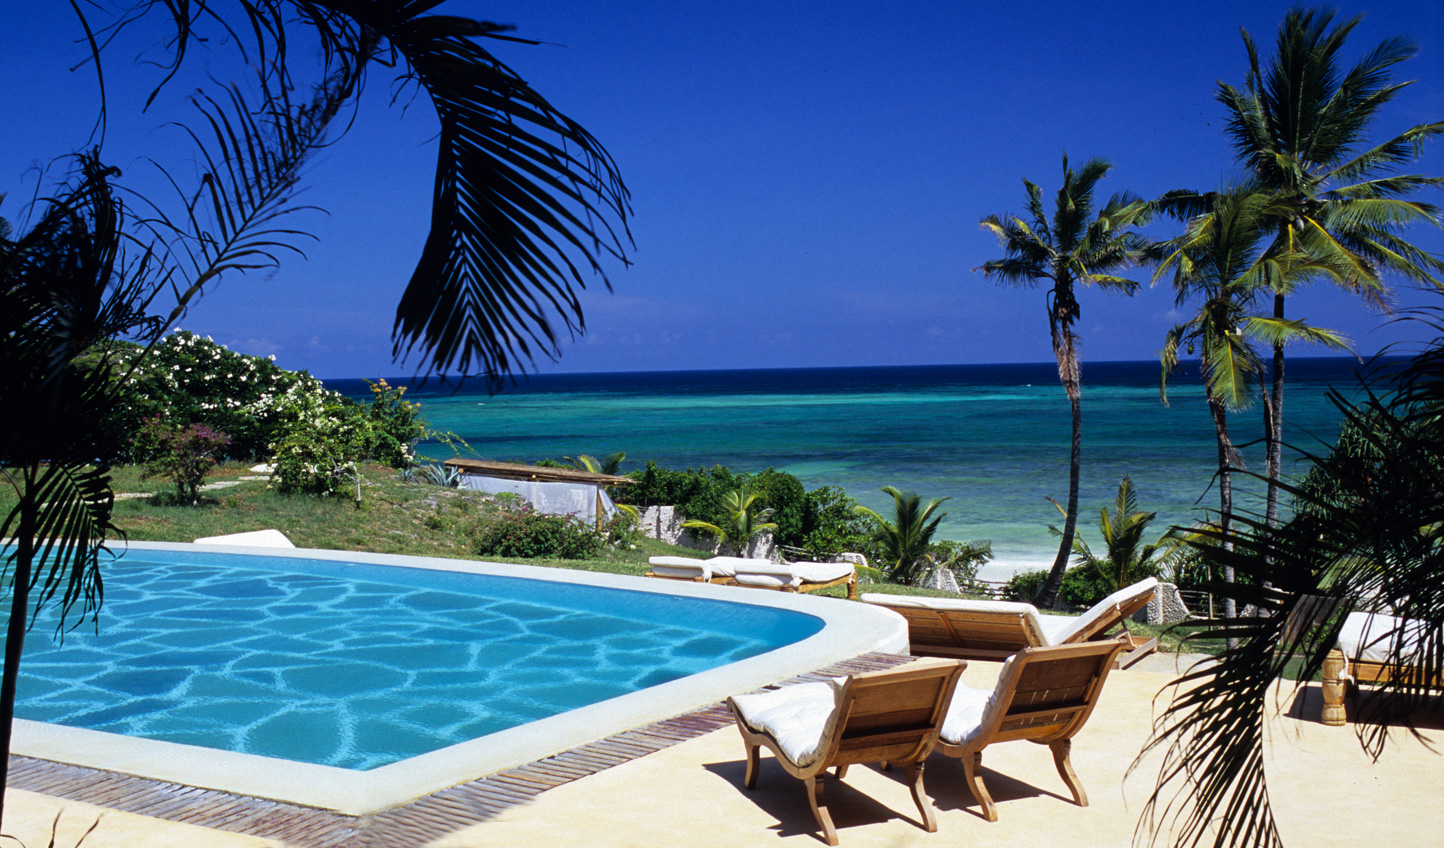 Soak up the sunshine of Diani Beach